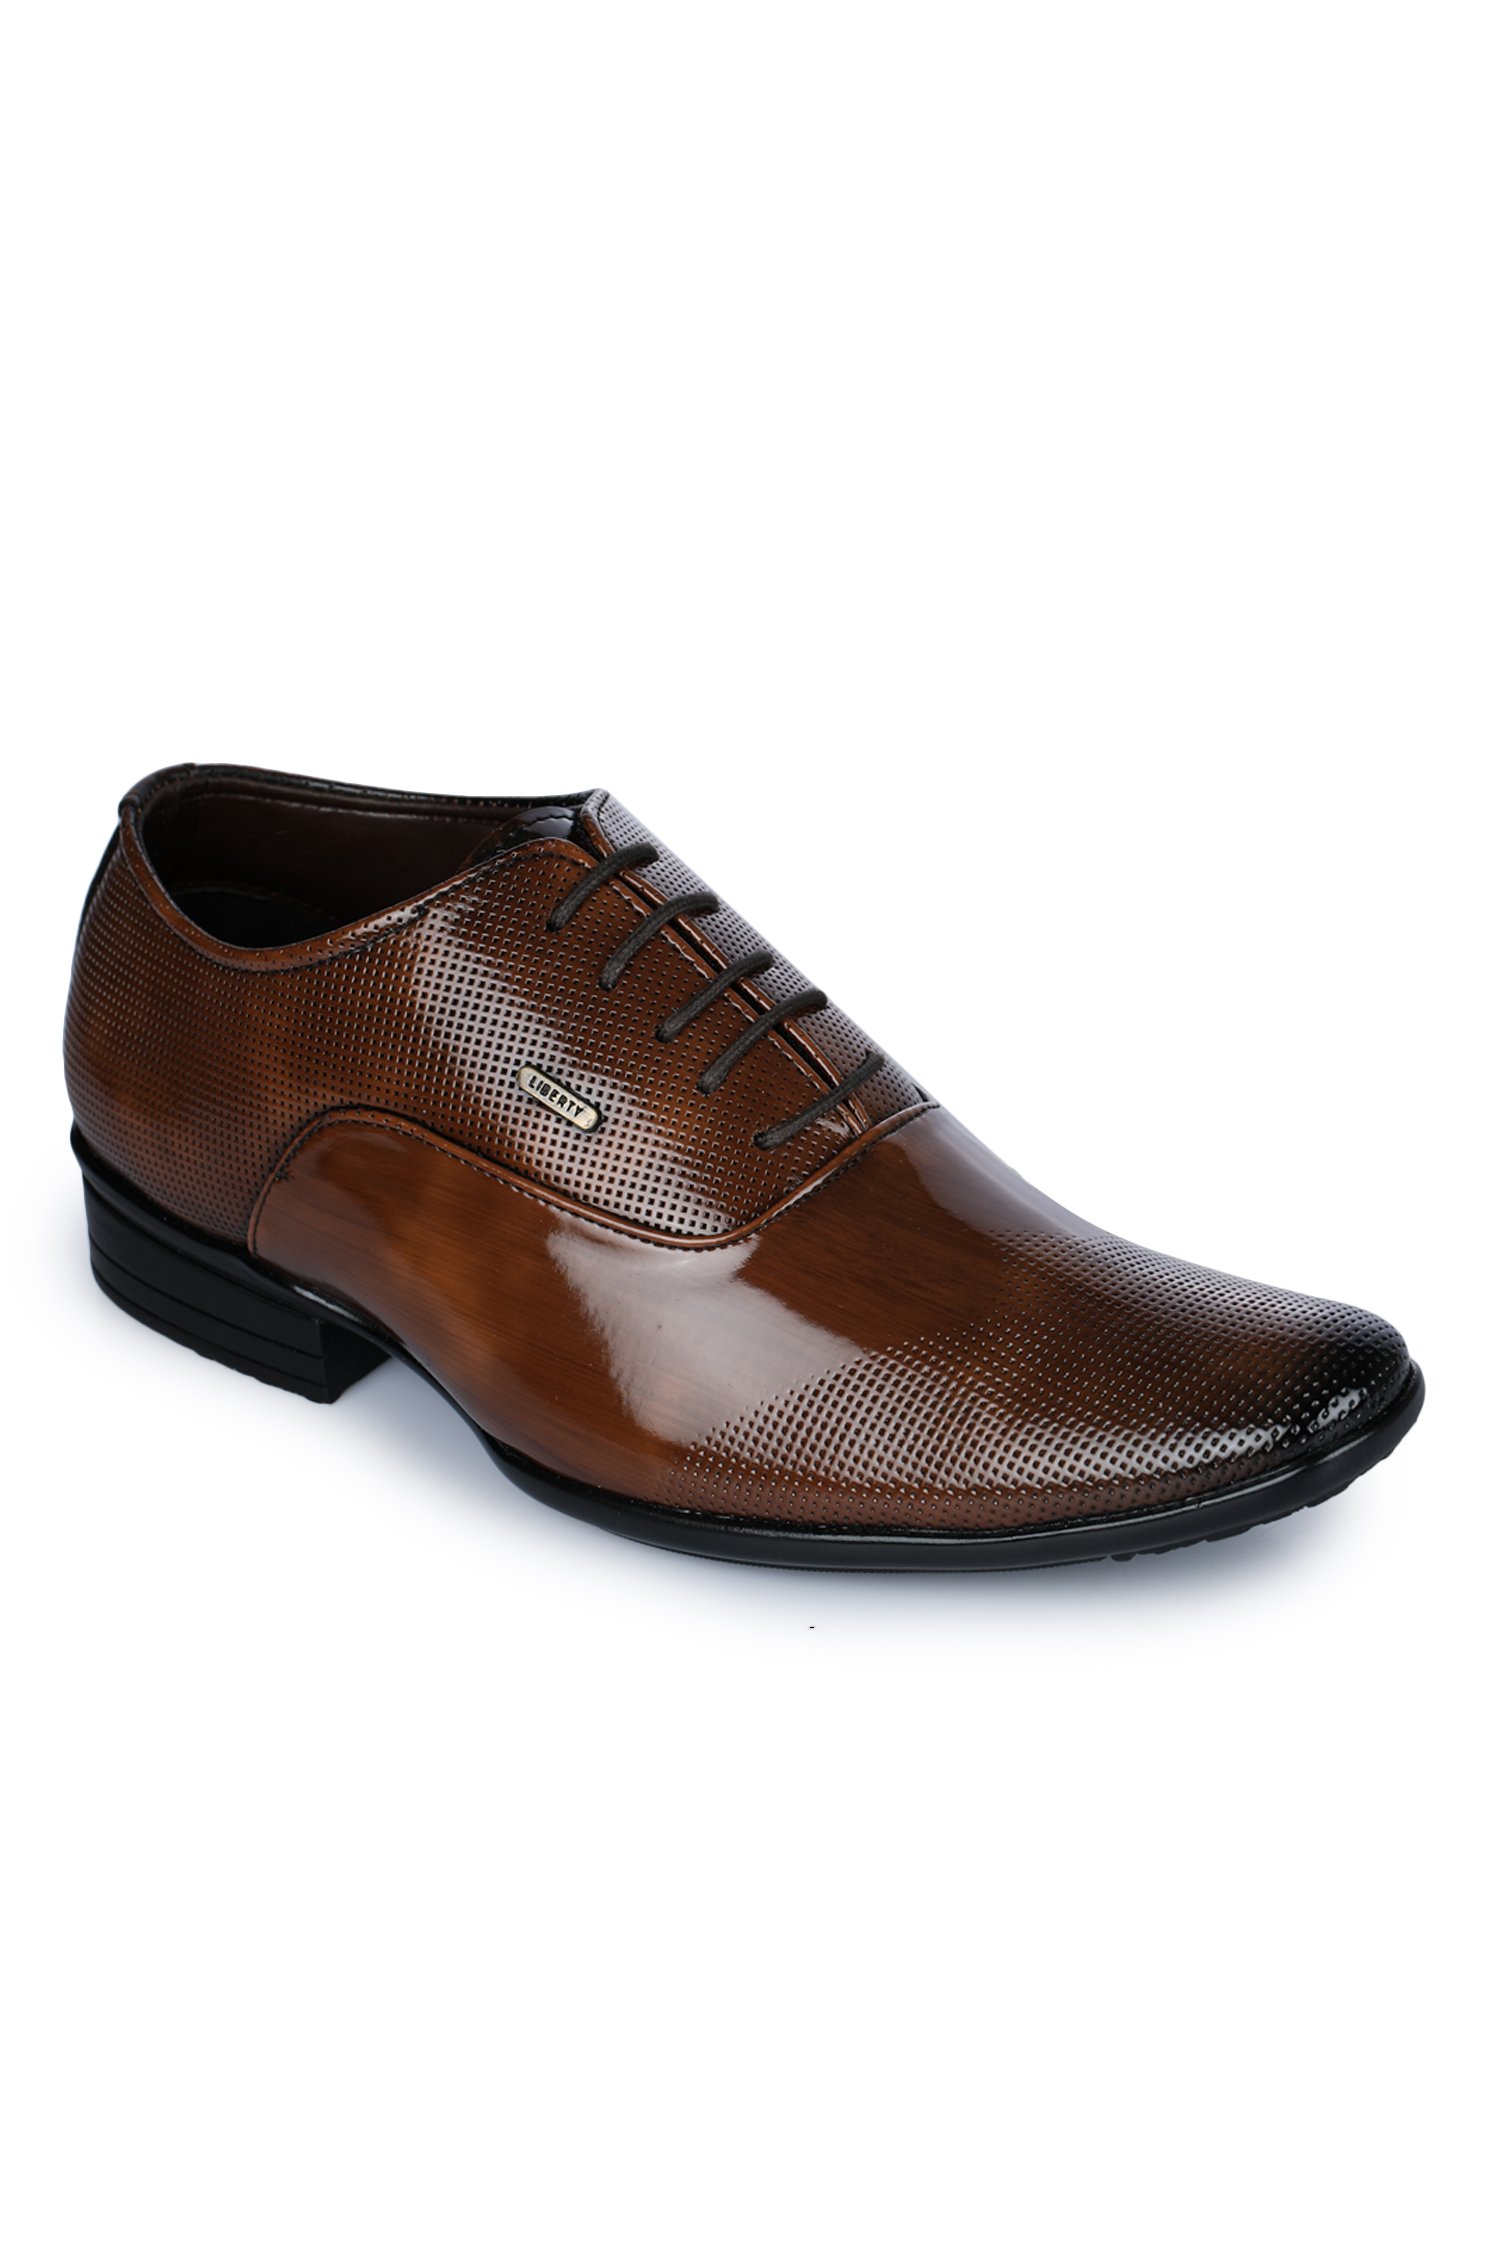 Liberty   Liberty Fortune Brown Formal Derby Shoes AGK-02_Brown For - Men